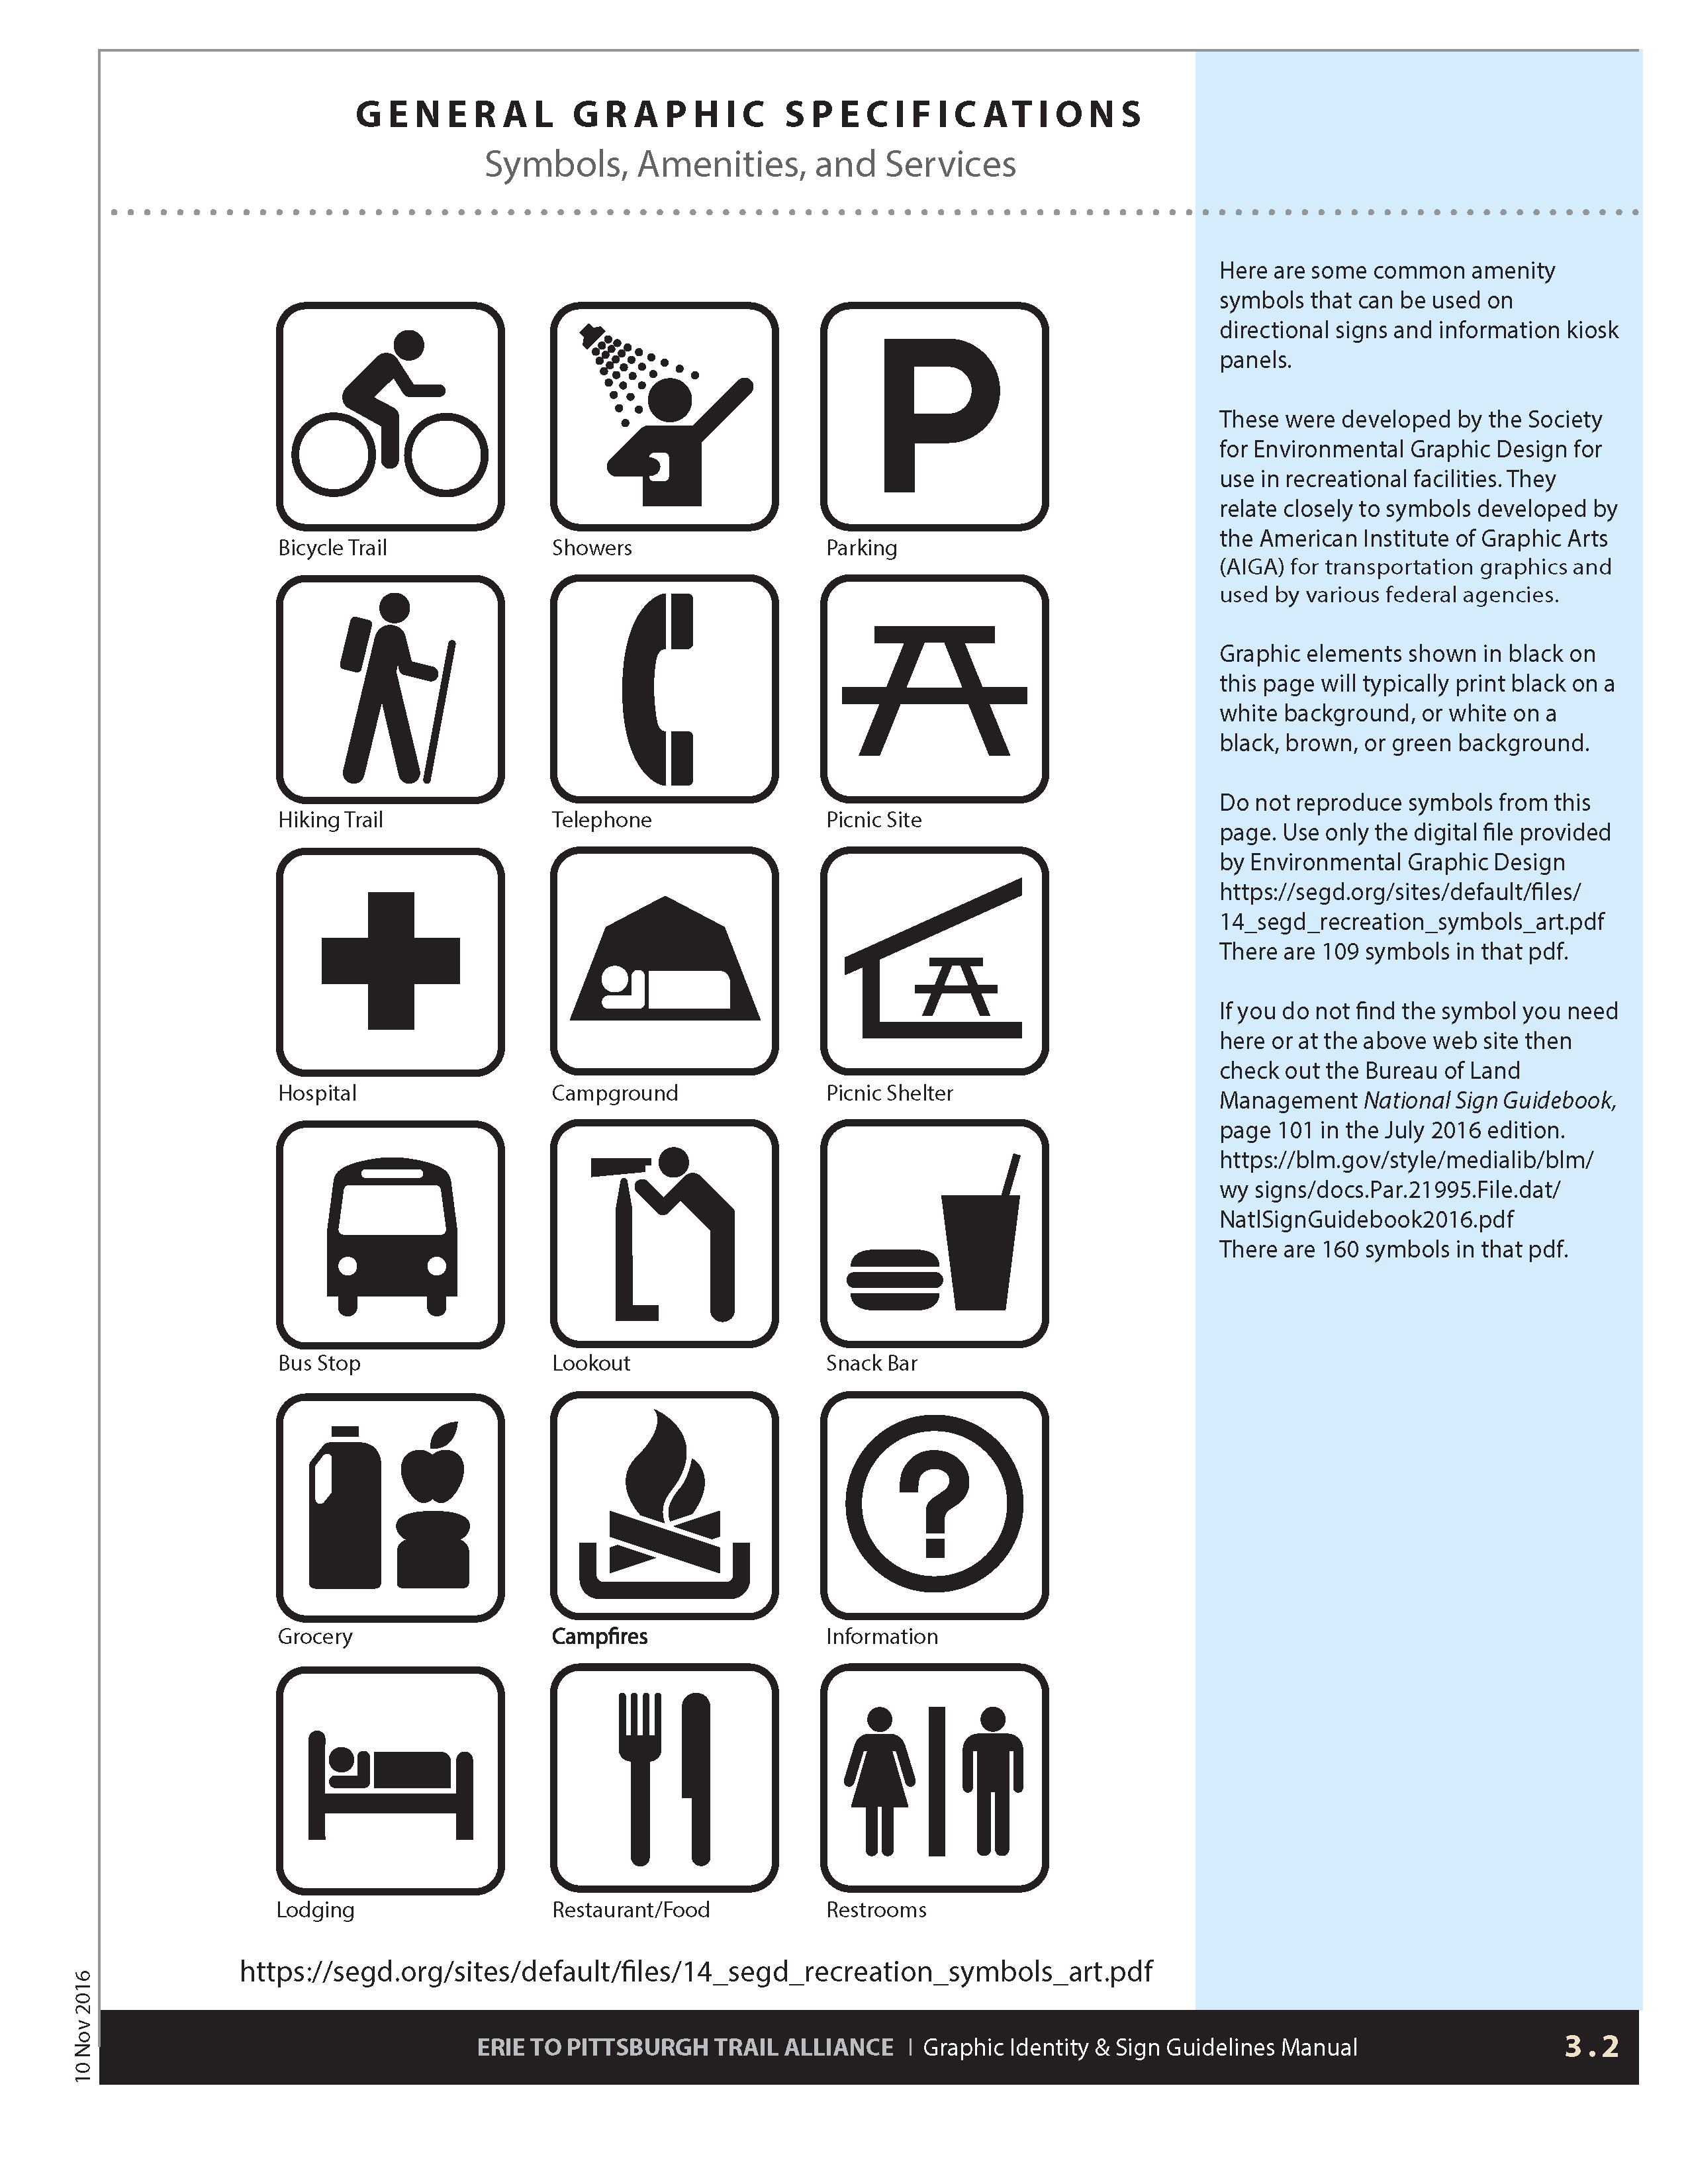 3.2 Symbols, amenities and Services | Erie to Pittsburgh